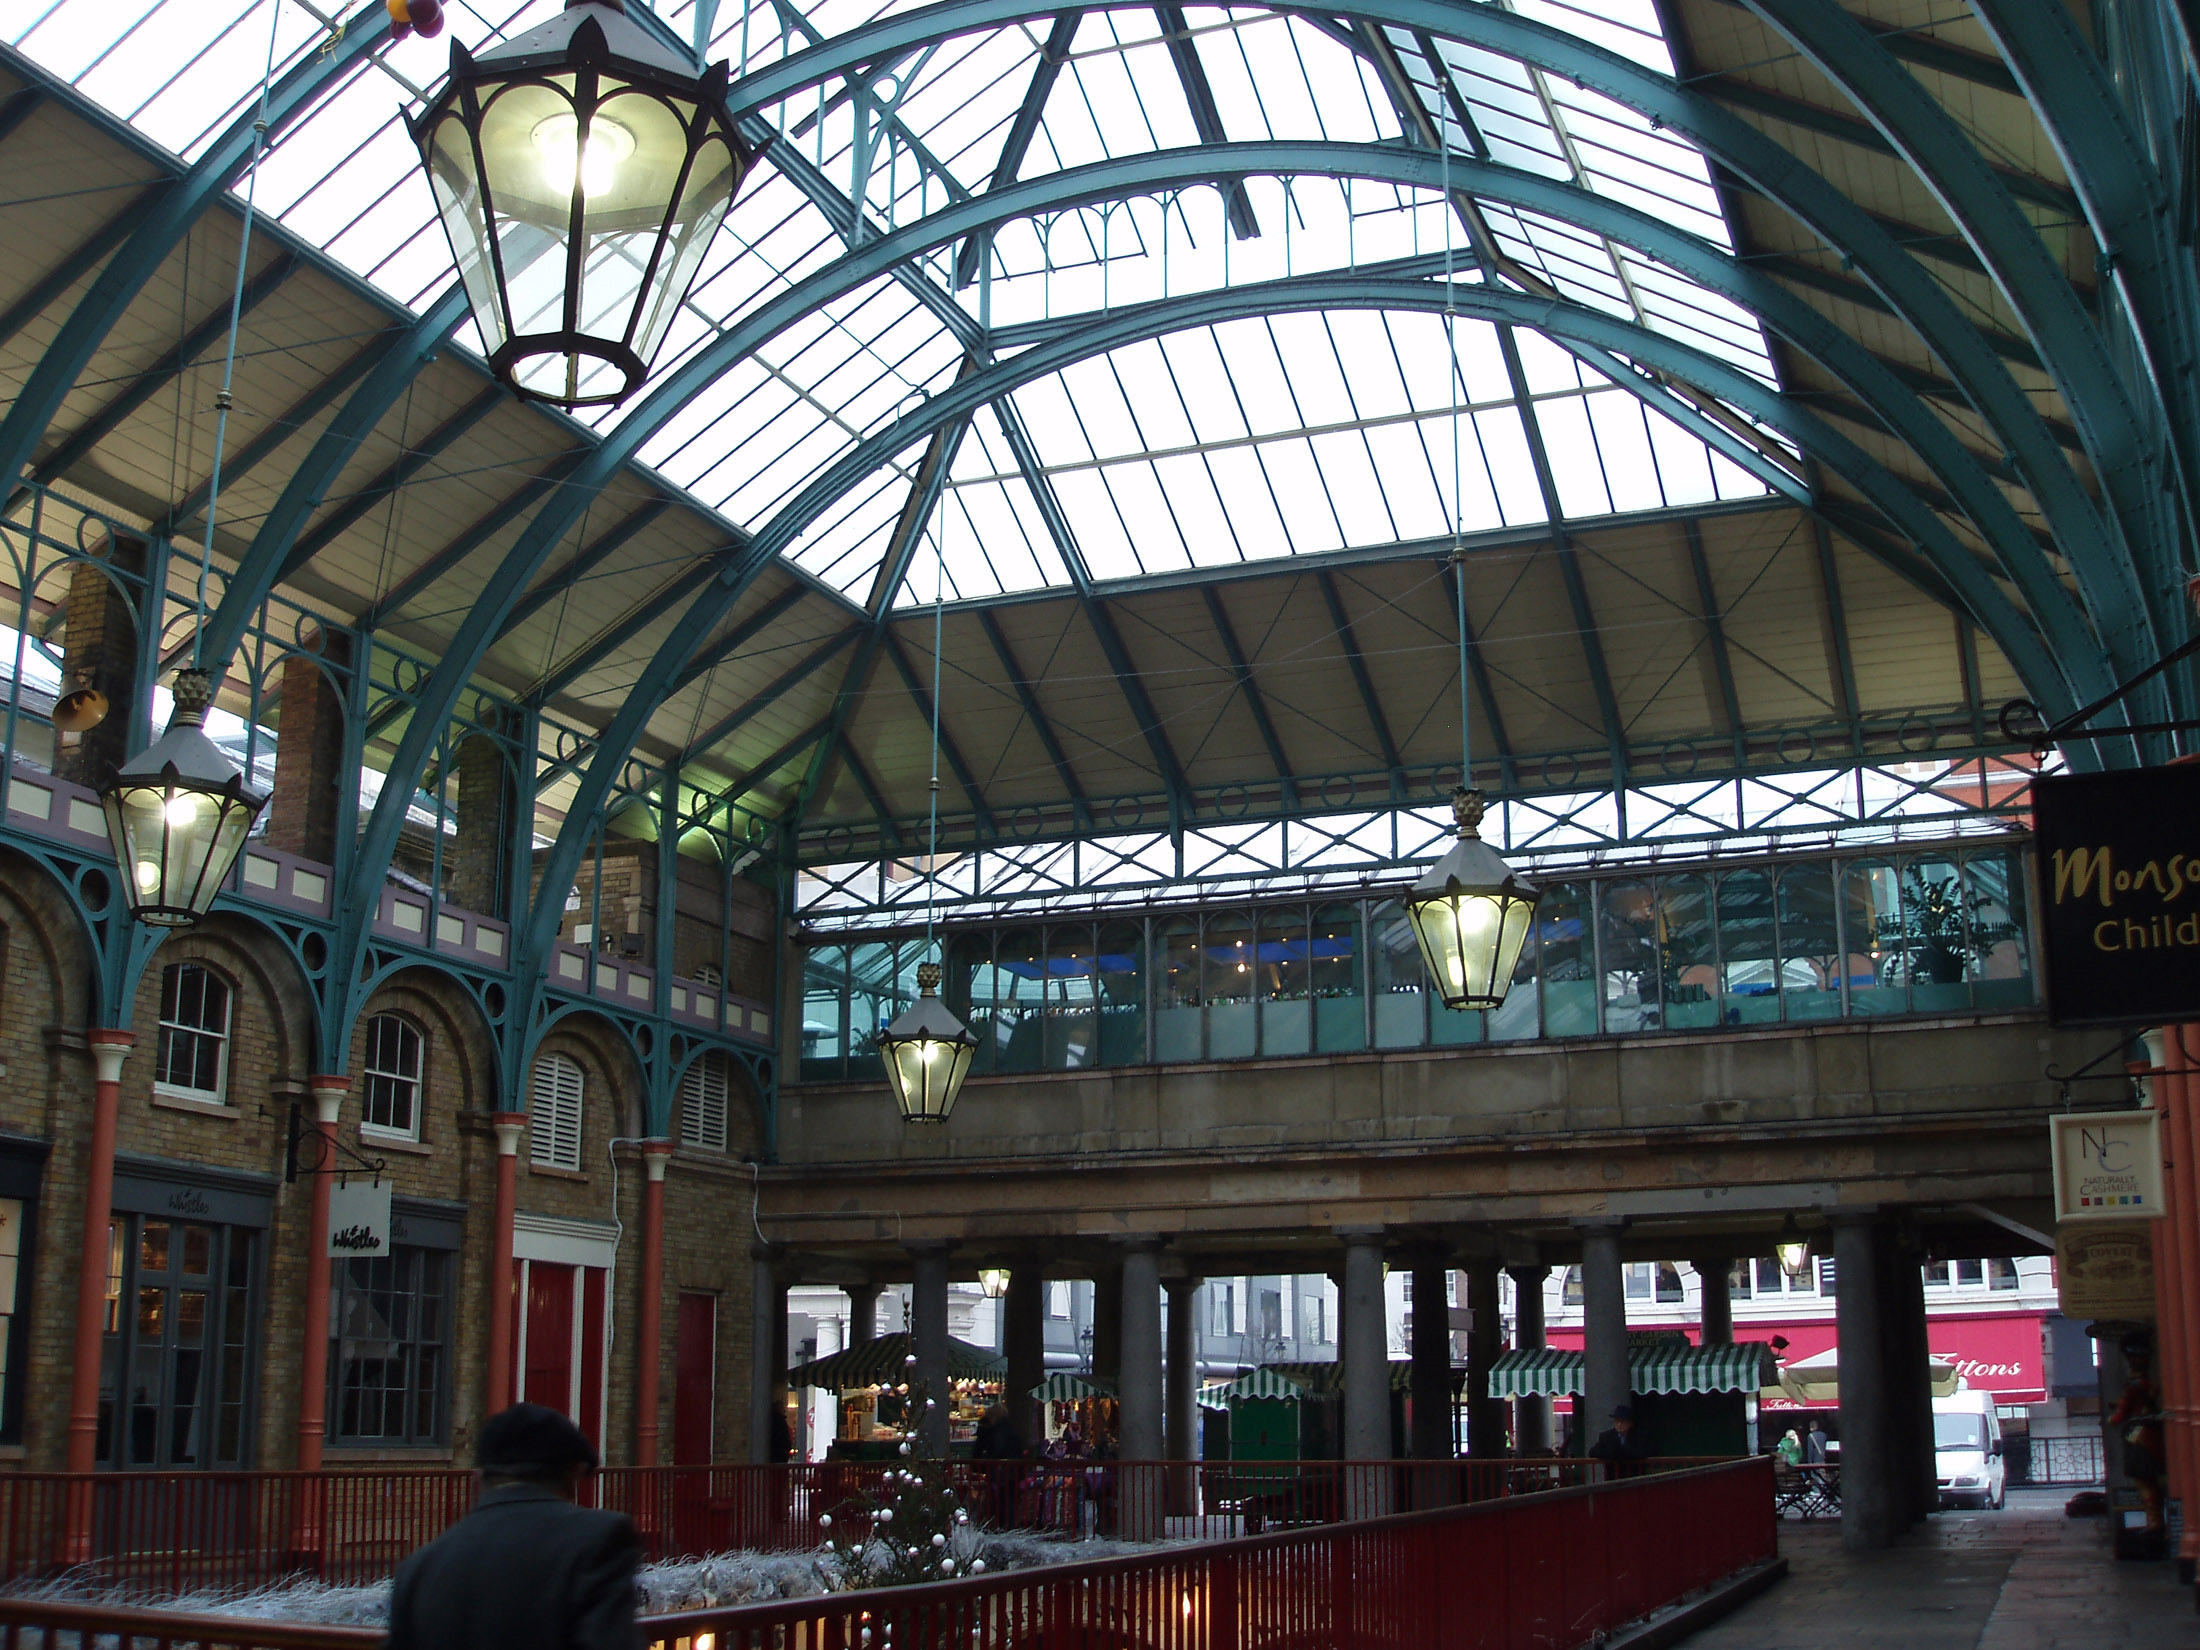 Covent Garden Market Building, a Huge Piazza or Open Area in London, between the West End and the City of London.